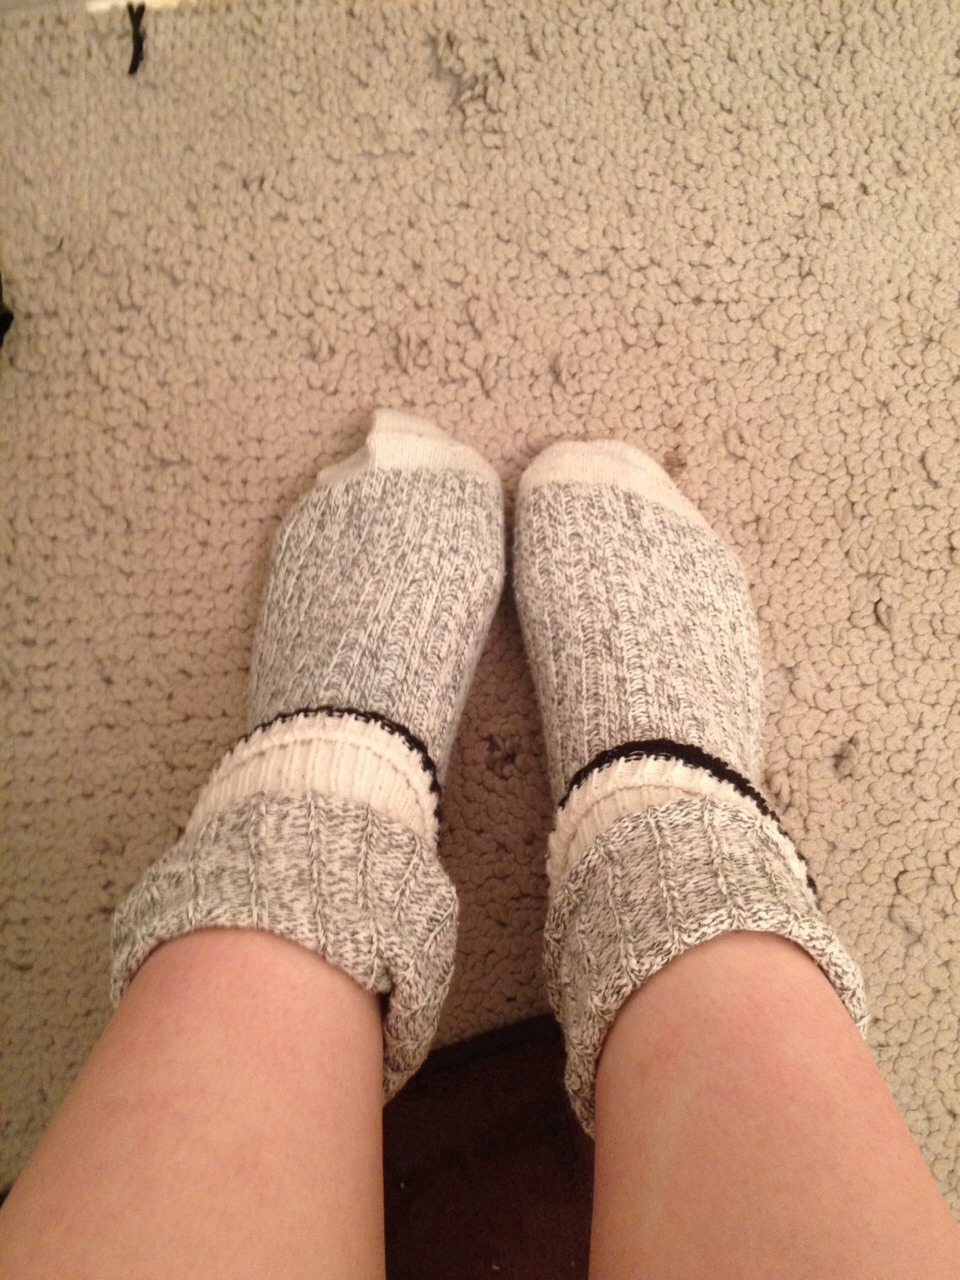 Put on some wool socks over top and go to bed. They should be dry by morning making you feel a little less sick.